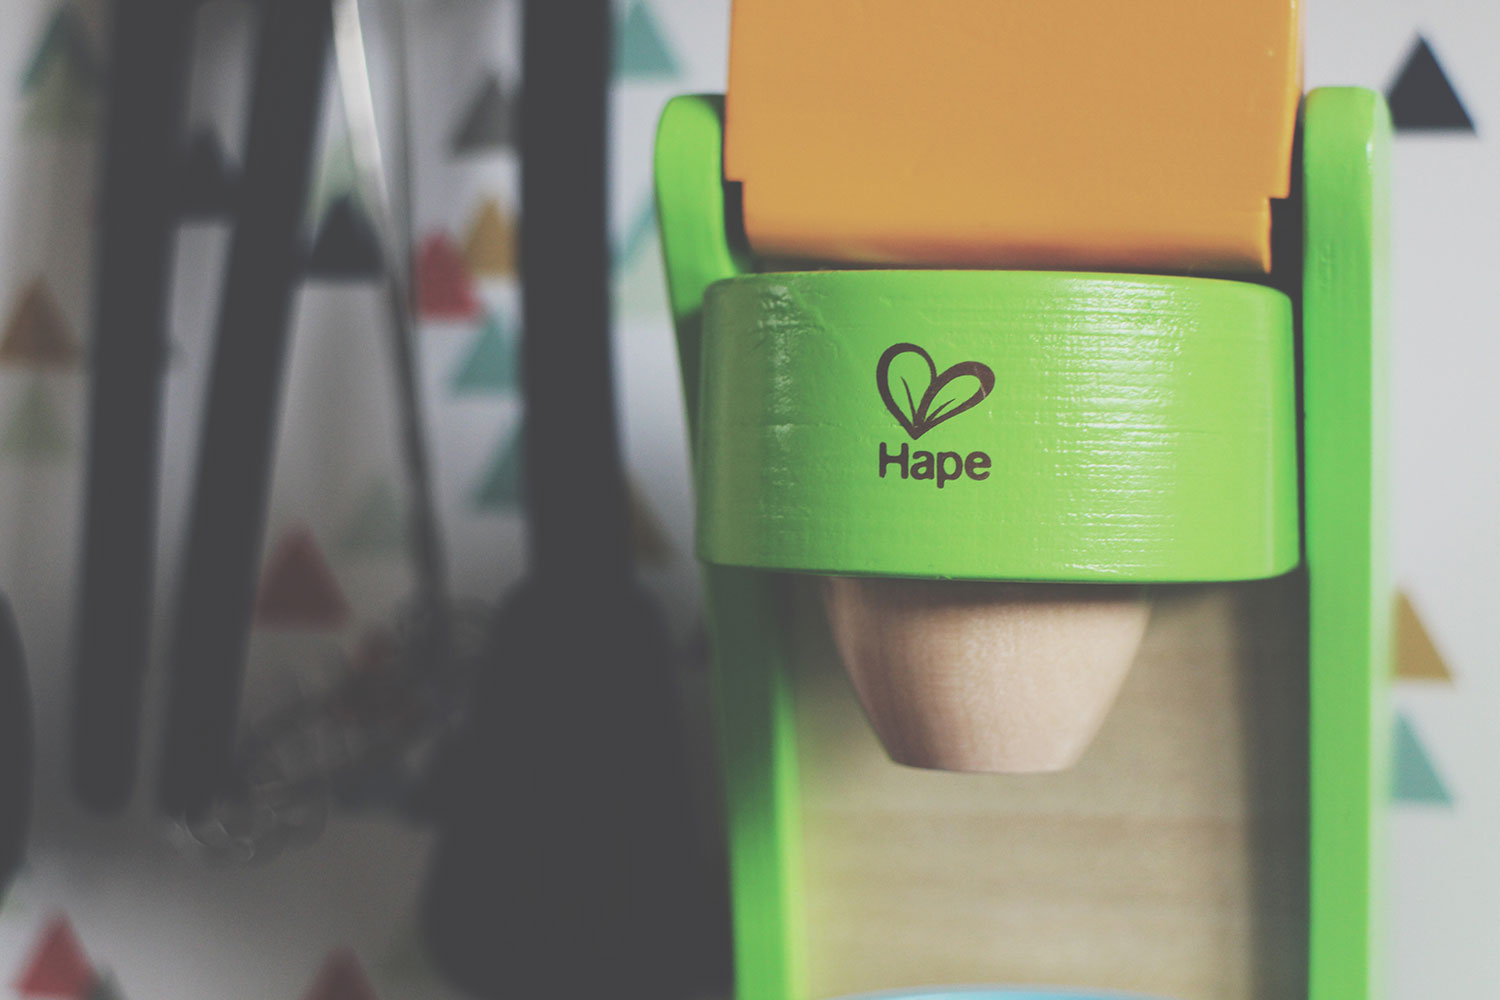 5 of The Best Wooden Toys for Toddlers - Hape wooden retro coffee machine with milk and mug